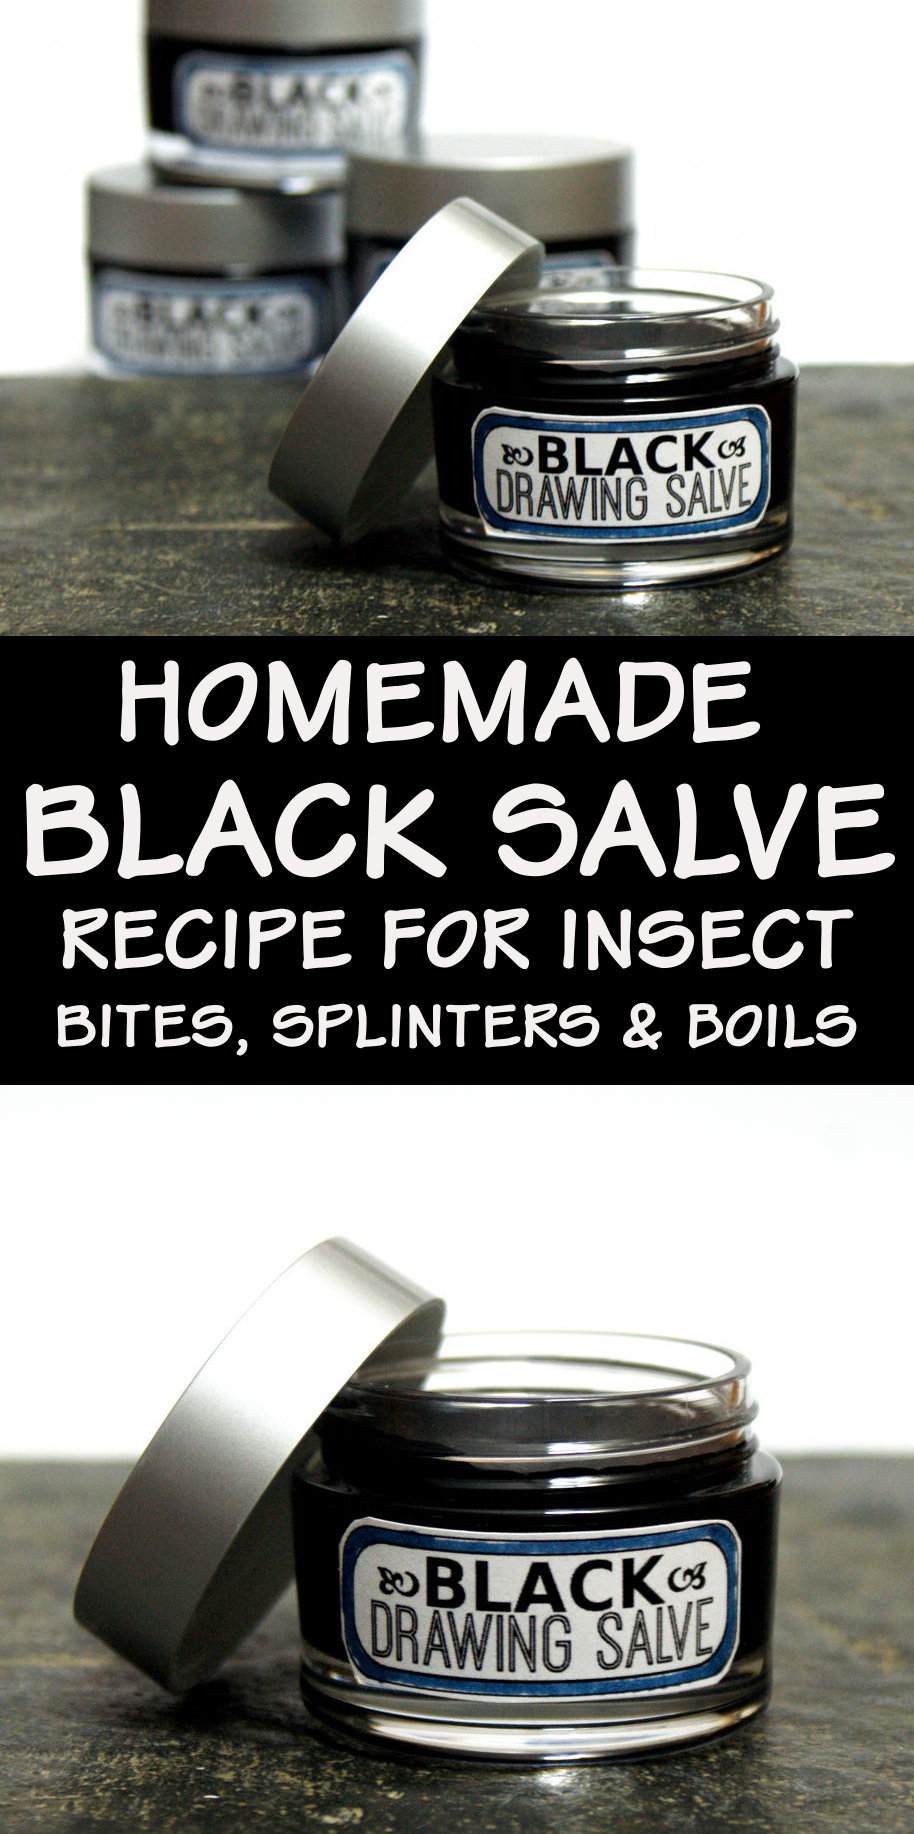 Black Drawing Salve Recipe! This homemade black drawing salve recipe works as a natural home remedy for splinters, boils, acne, bee stings, poison and infections. A twist off traditional black drawing salve recipes, this black drawing salve also contains honey and antioxidant green tea. #blacksalve #salve #medicine #skincare #diy #recipe #drawingsalve #natural #botanical #remedy #homeremedy #naturalremedy